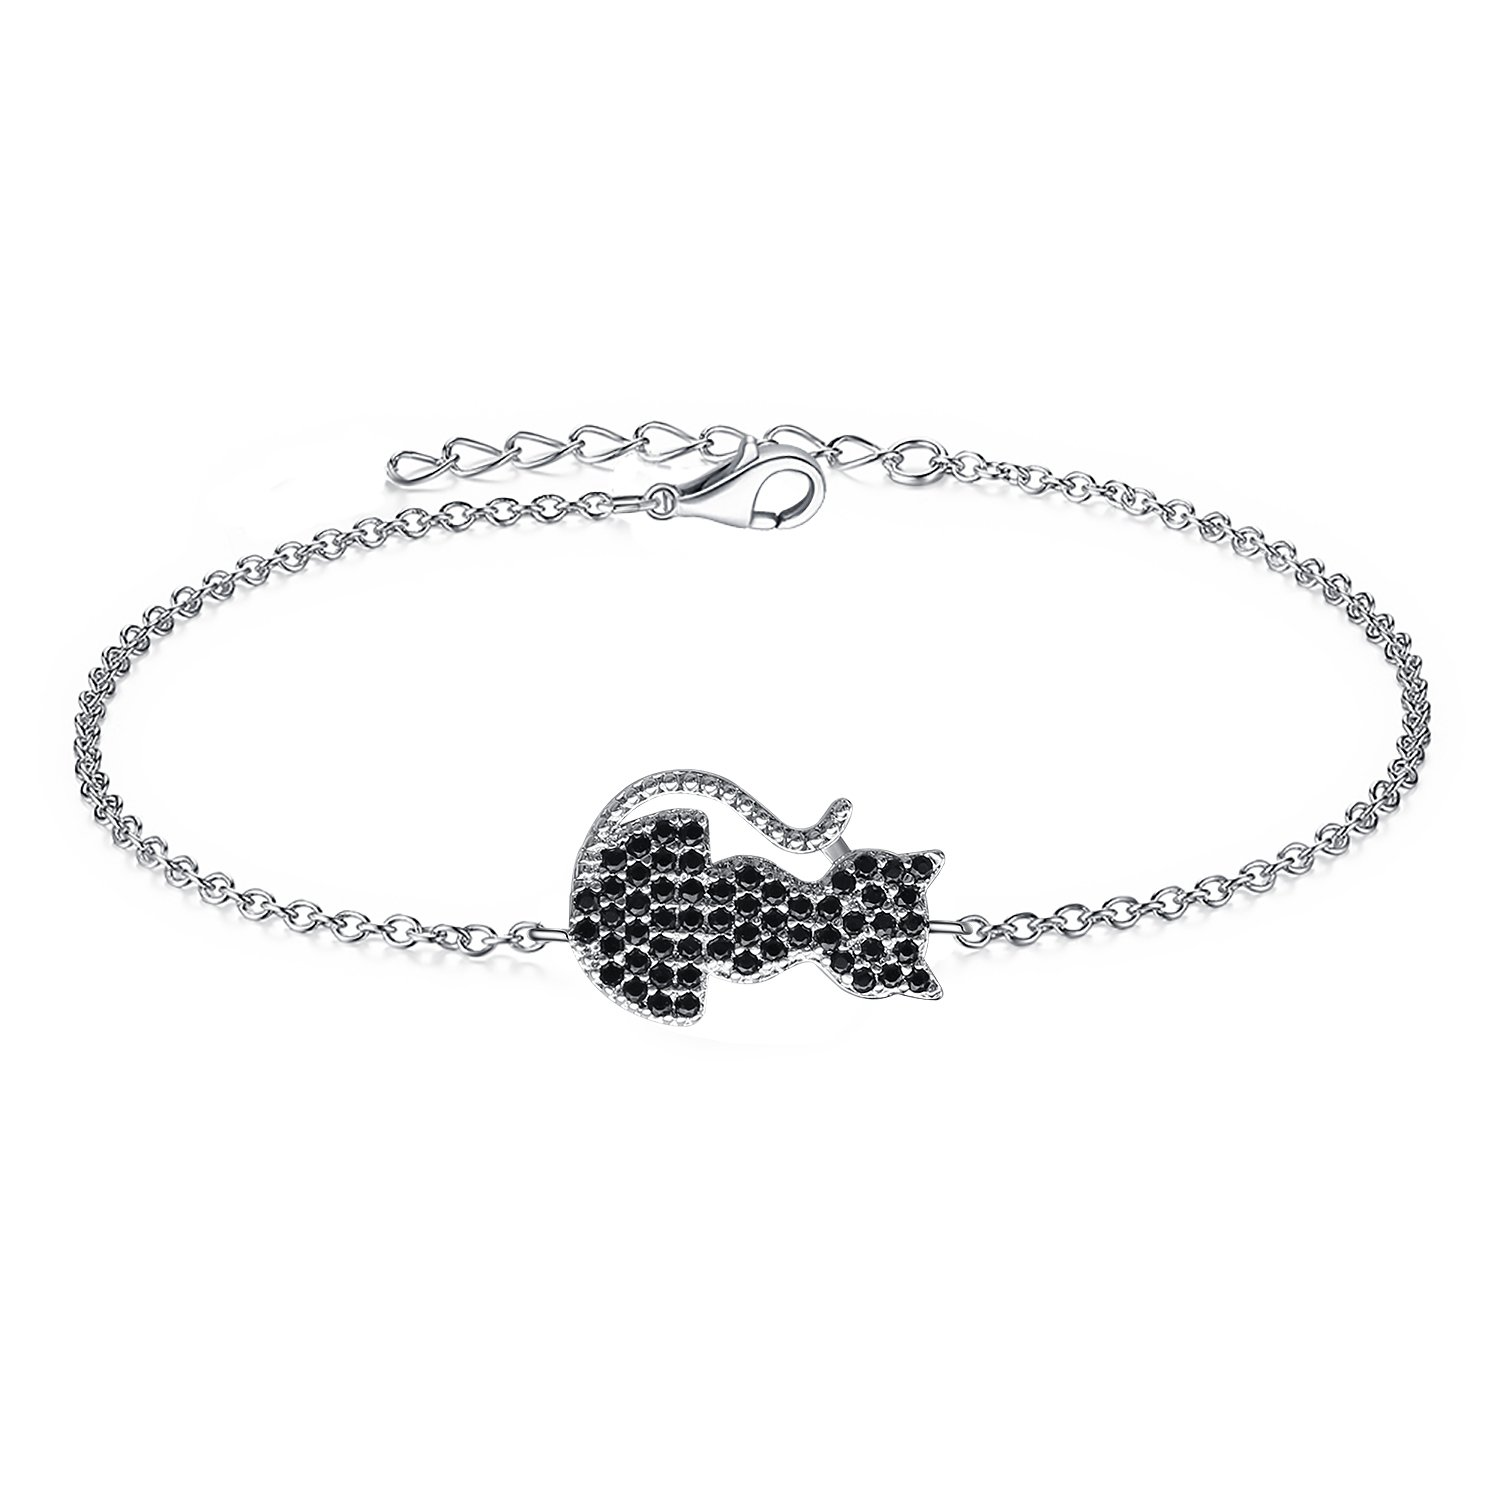 AoedeJ Cute Cat Kitty 925 Sterling Silver Chain Bracelets Black Cubic Zirconia Charm Bracelets for Girl Women